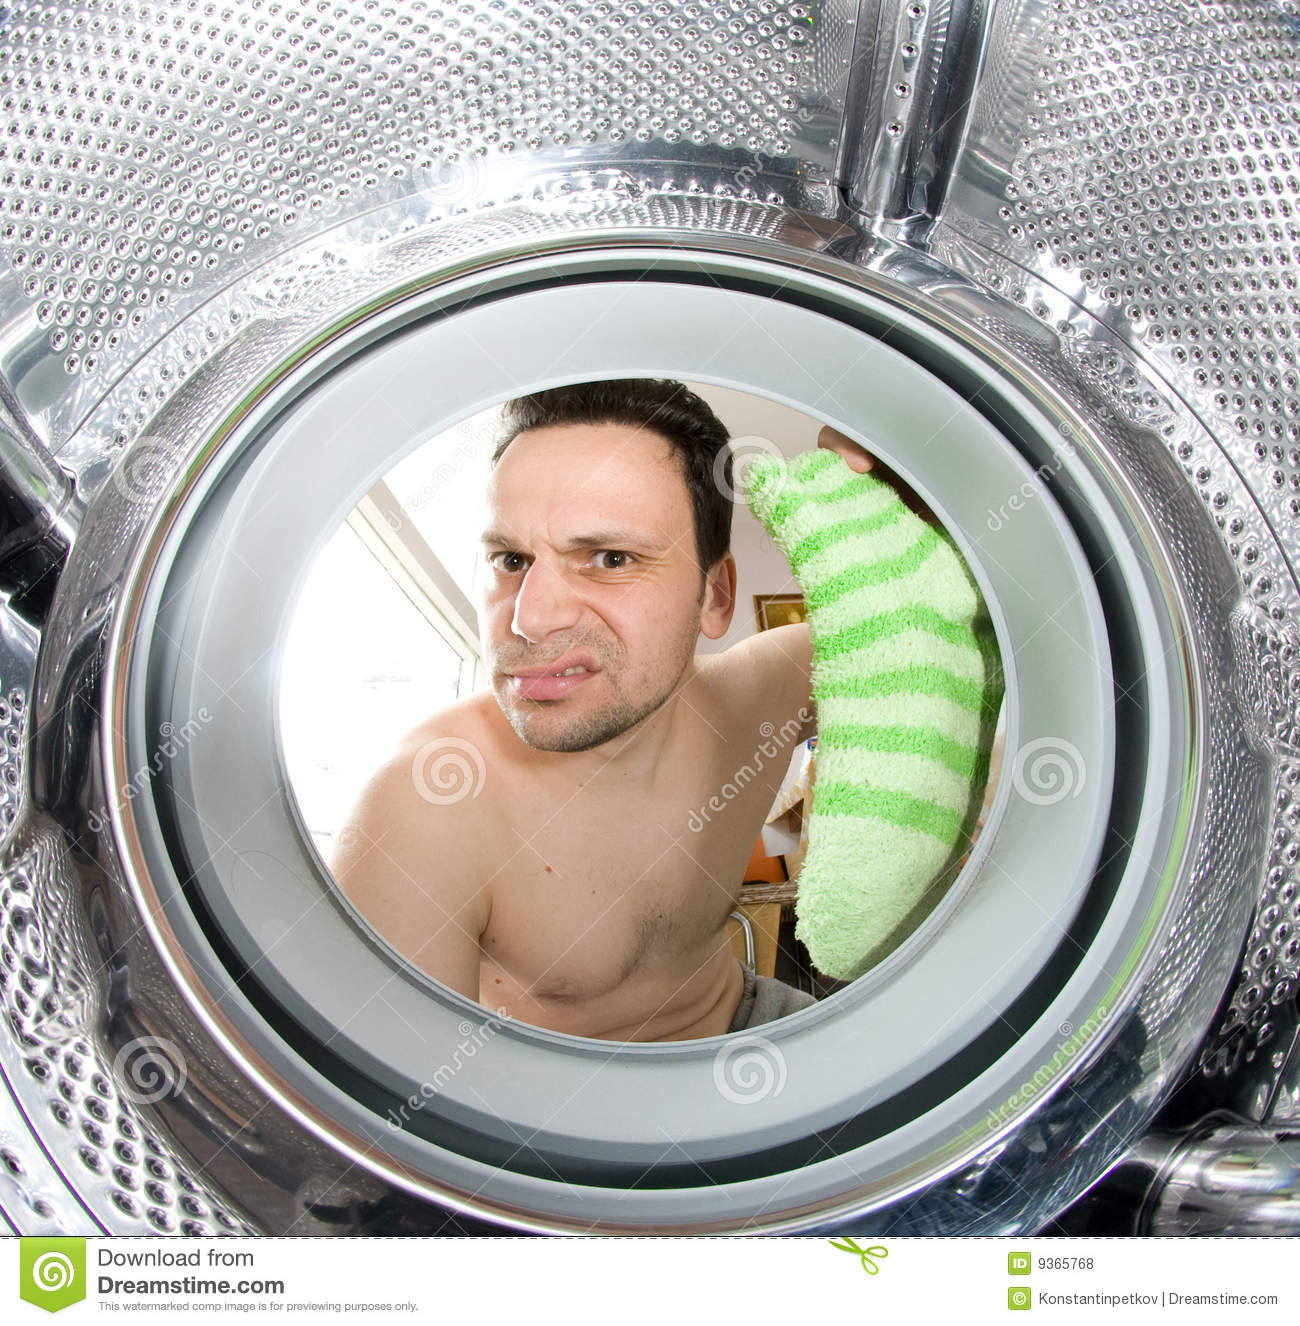 Washing Machine Inside ~ Inside washing machine royalty free stock photos image